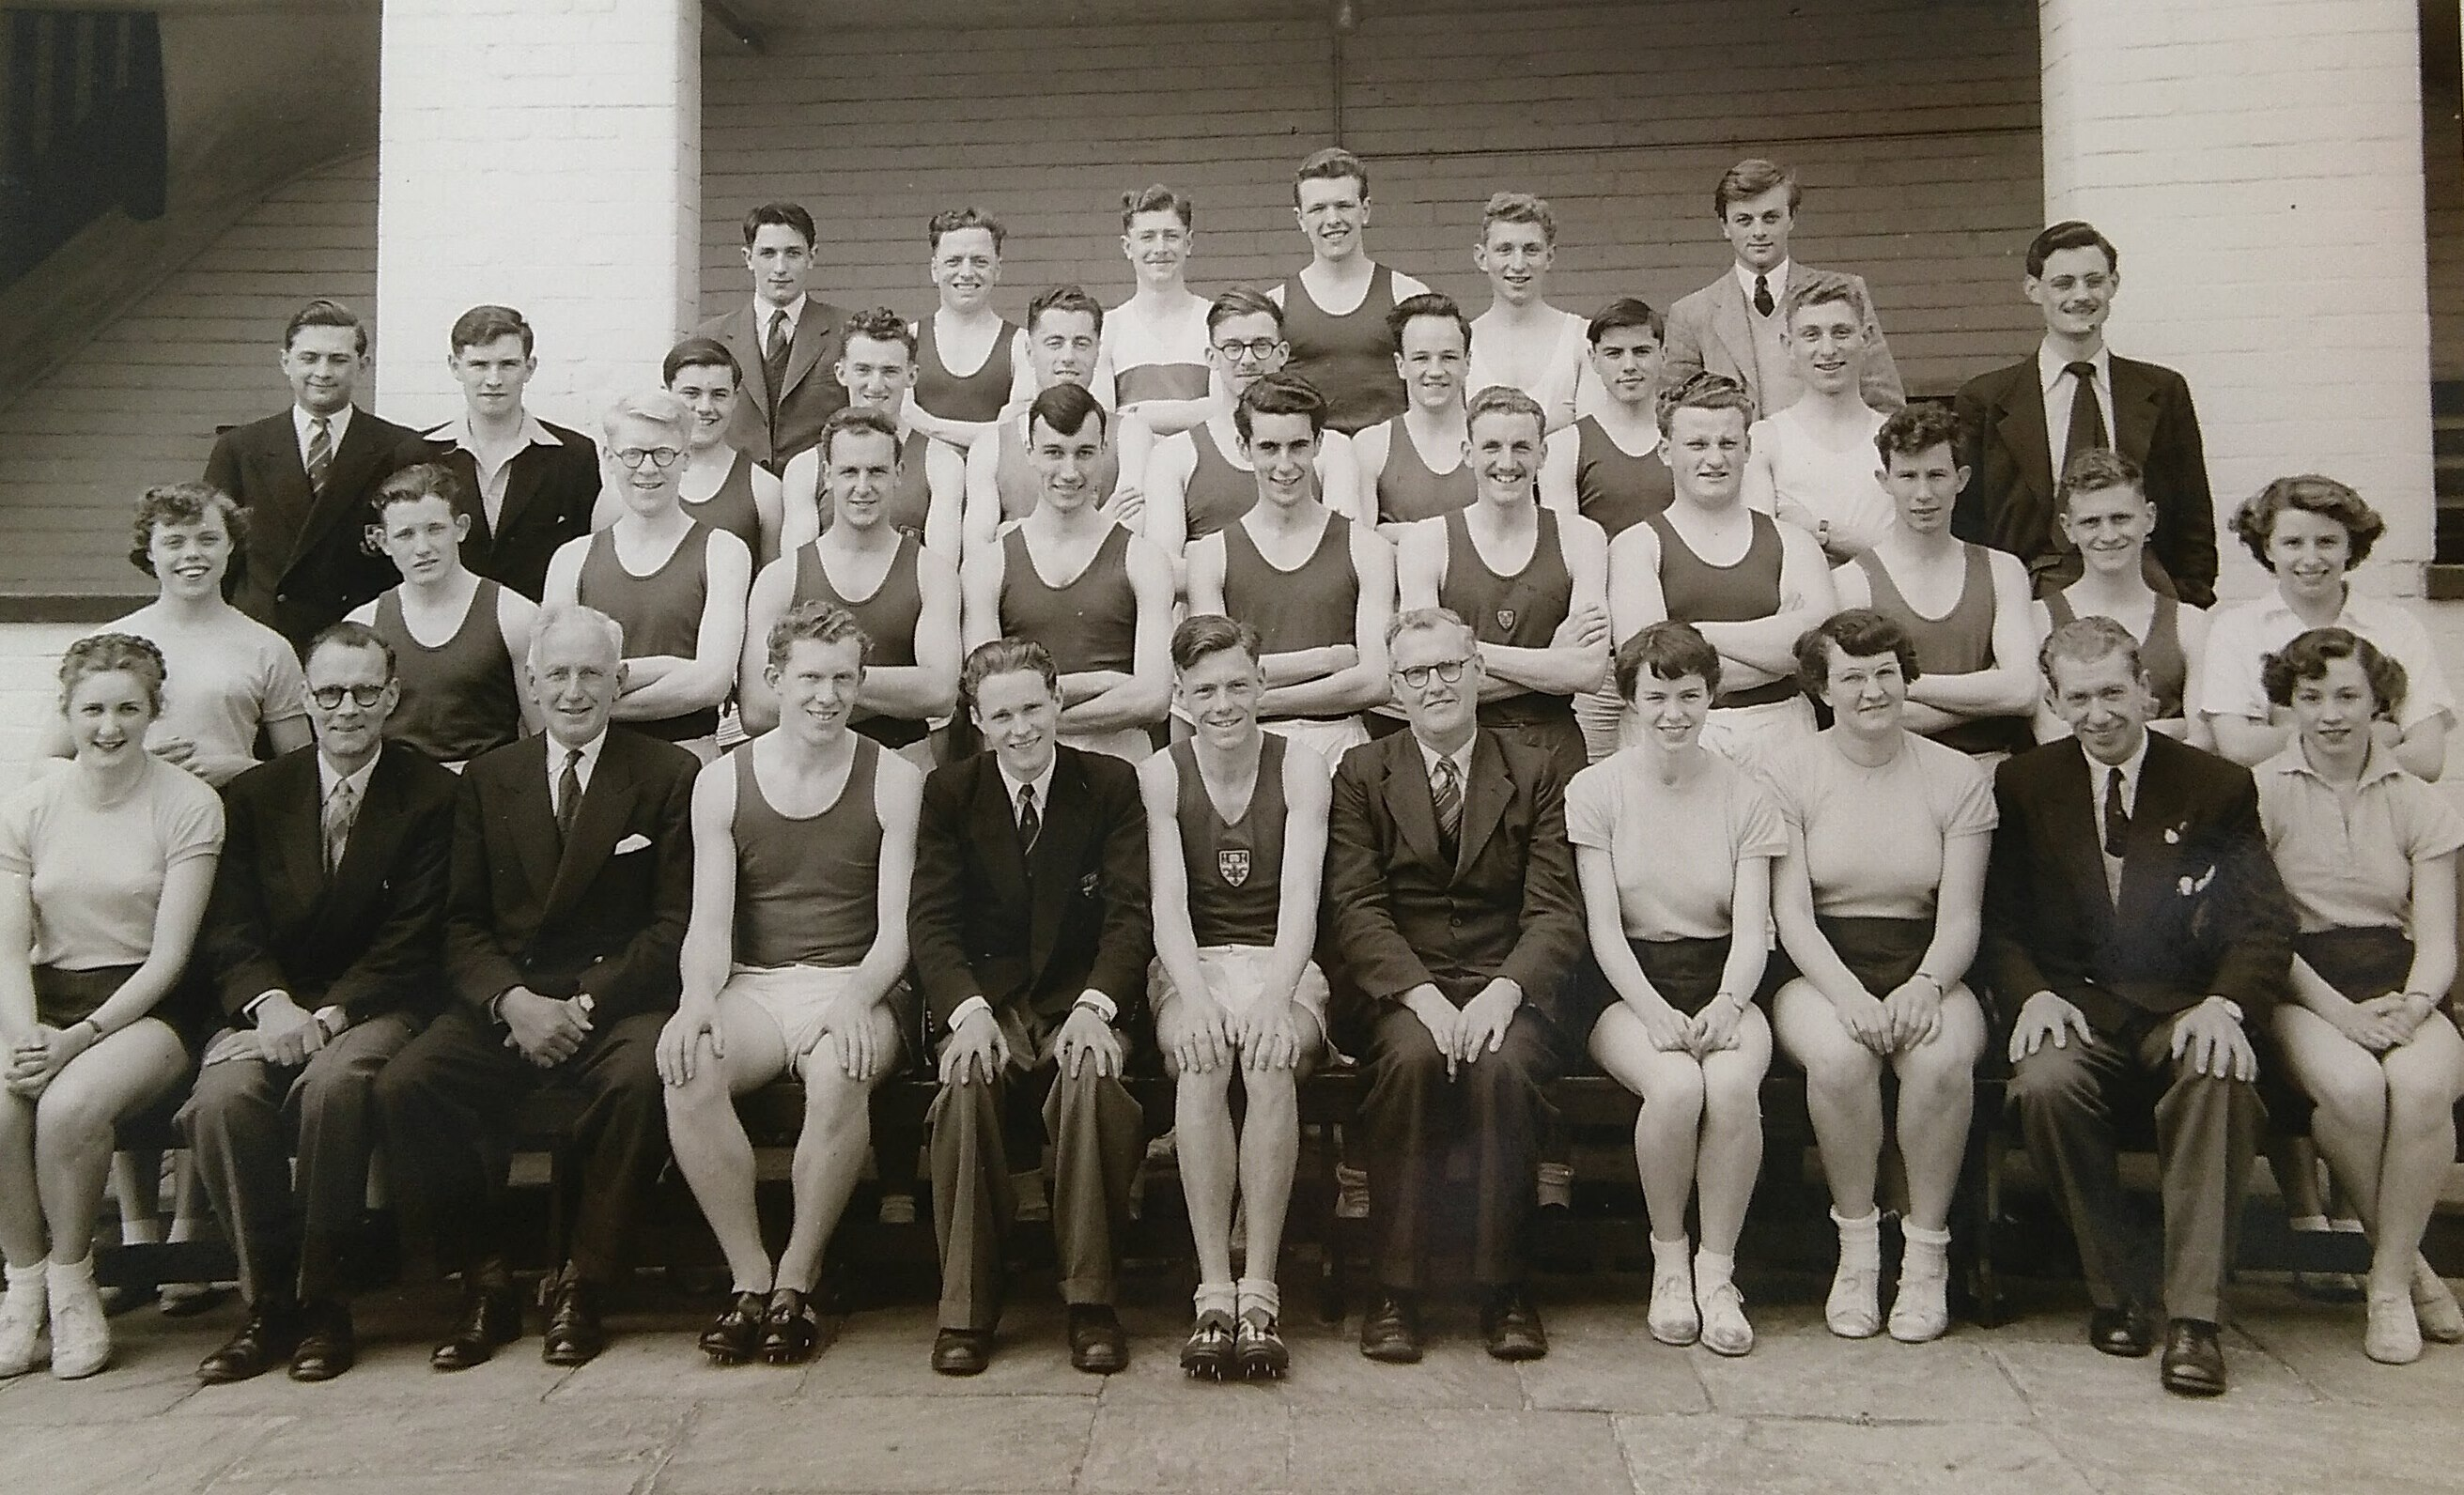 Undated photograph of Cross Country and Athletics Club (UU 20/4/2)